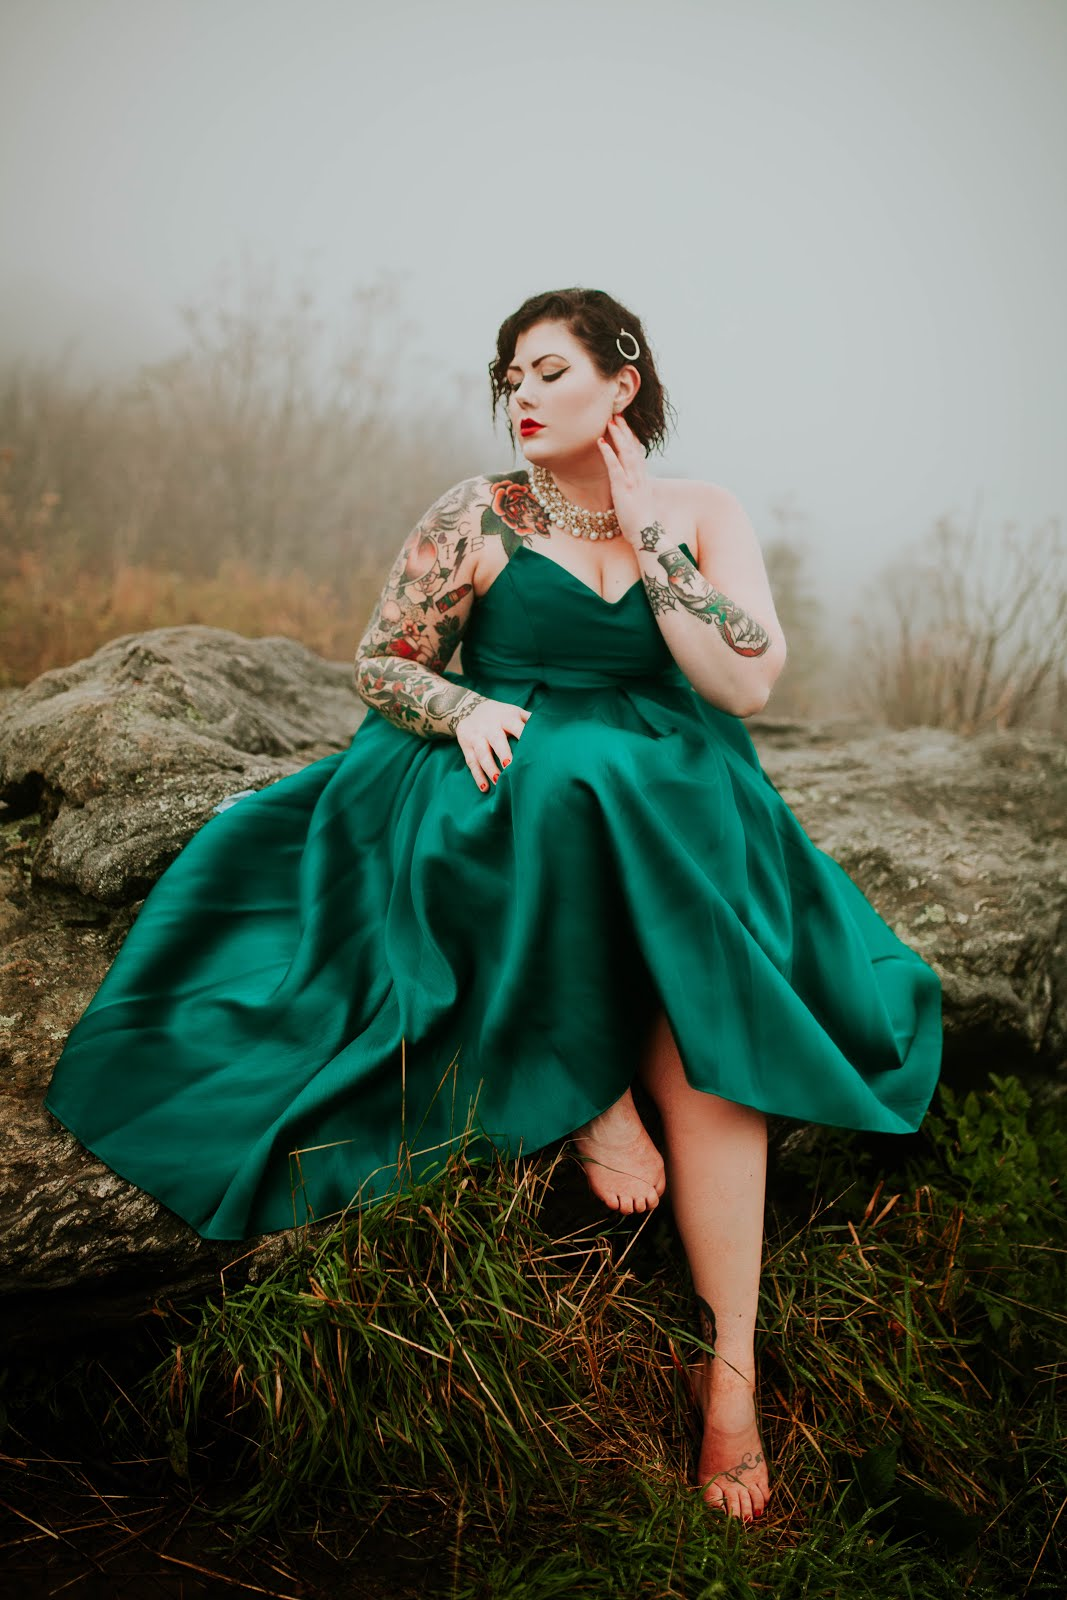 Trashy Betty Photography - Anderson, SC PinUp Boudoir & Portrait Photographer